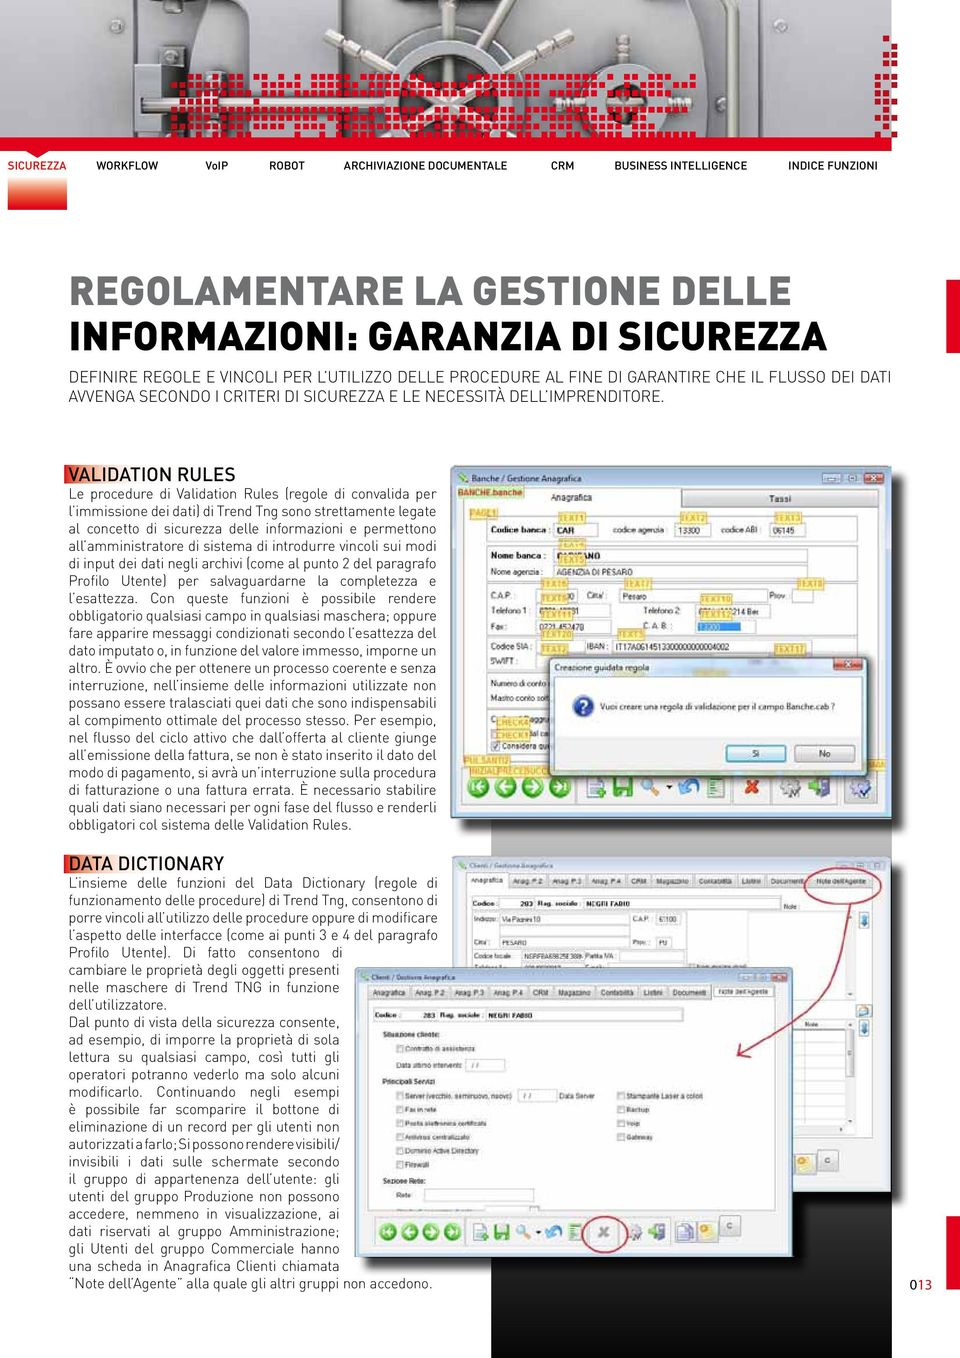 VALIDATION RULES Le procedure di Validation Rules (regole di convalida per l immissione dei dati) di Trend Tng sono strettamente legate al concetto di sicurezza delle informazioni e permettono all